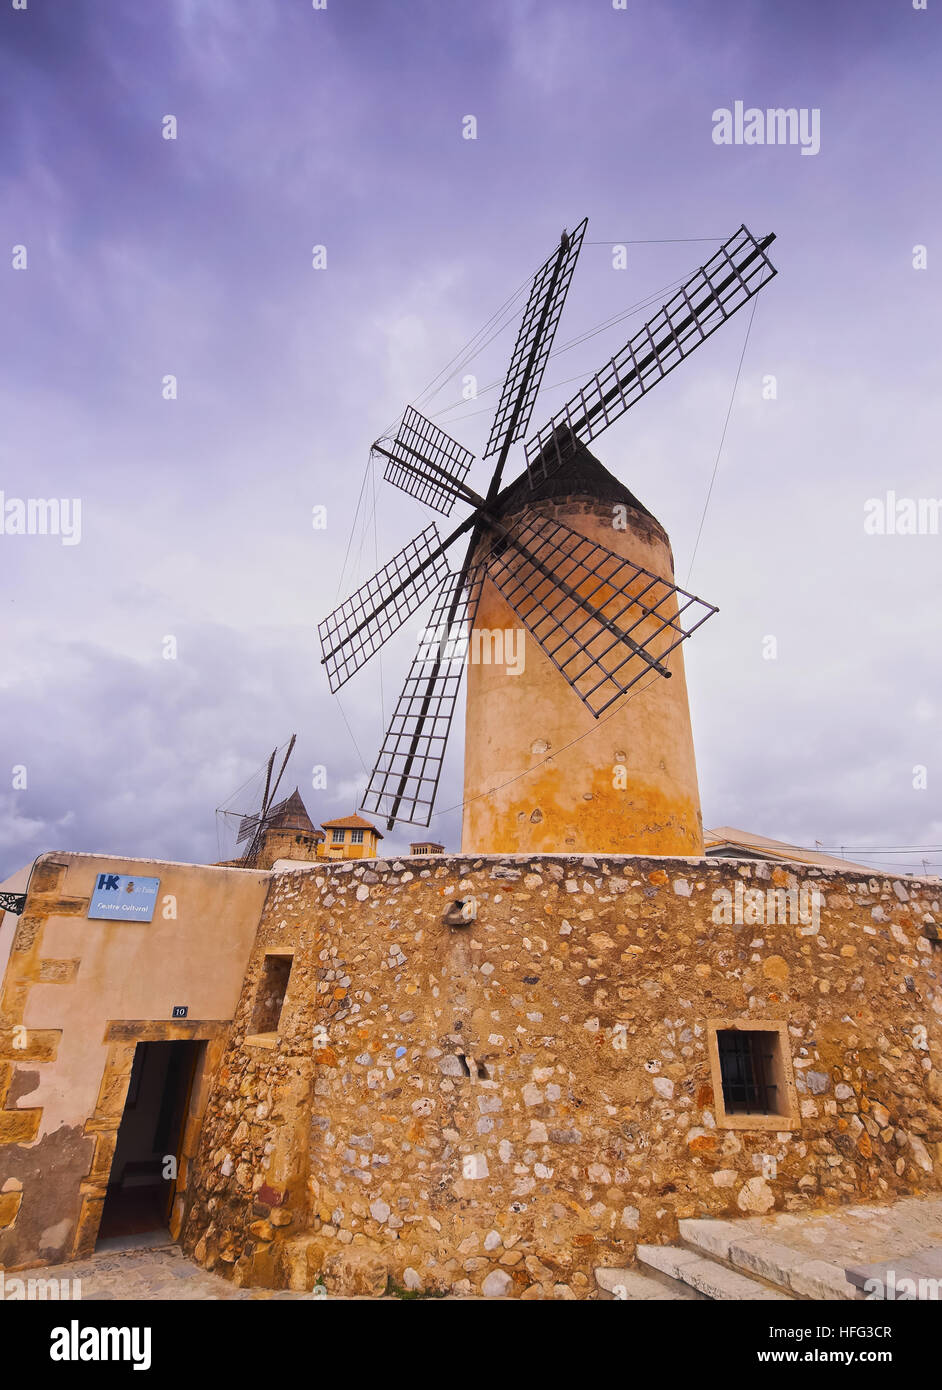 Windmill, Palma de Mallorca, La Palma, Balearic Islands, Spain - Stock Image